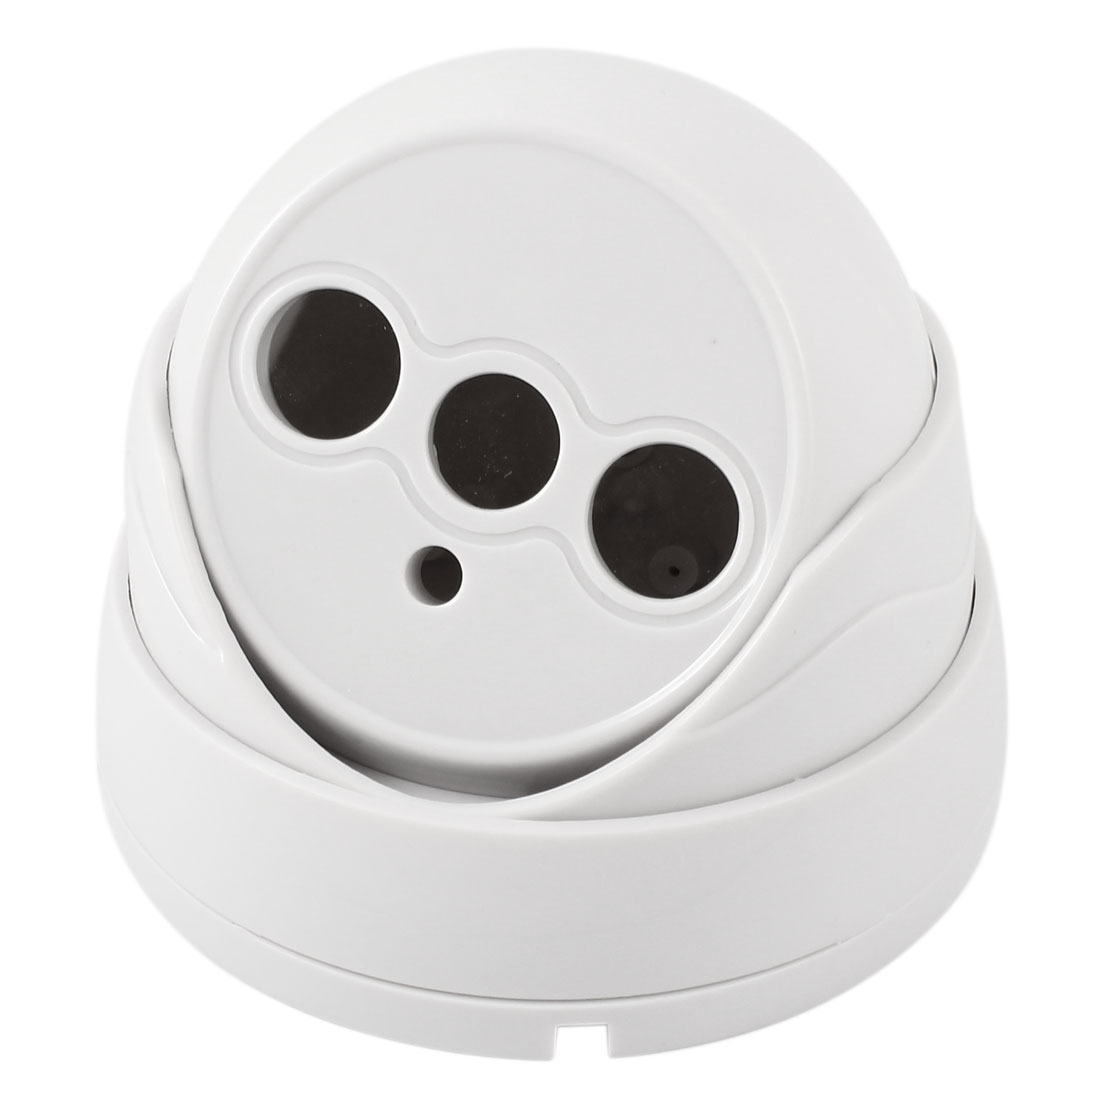 Dual LED Surveillance White Plastic CCTV Dome Camera Housing Case